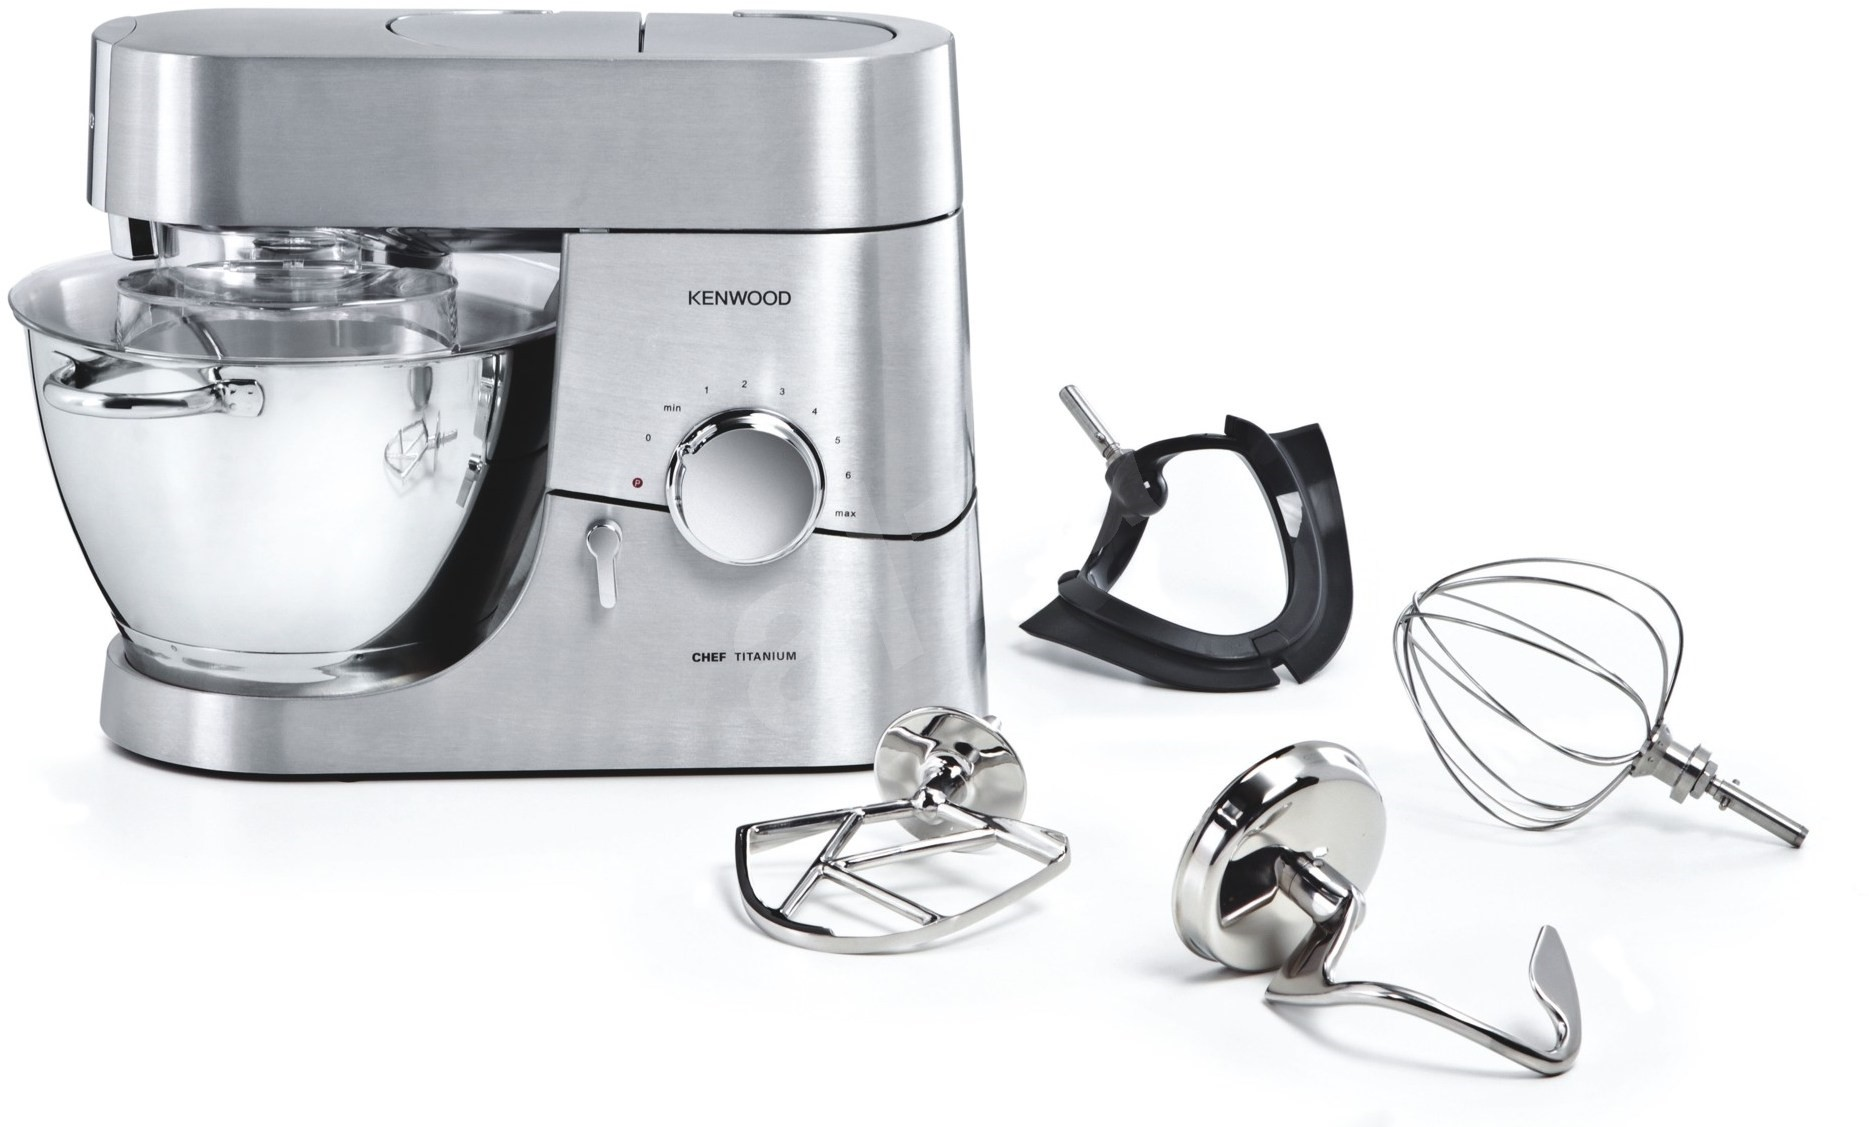 Food processor kenwood vs kitchenaid waring blender 1200 watt food processor kenwood vs kitchenaidkitchenaid food processor black friday uk salestop food processing companies in hyderabadhomemade juice recipes using forumfinder Images